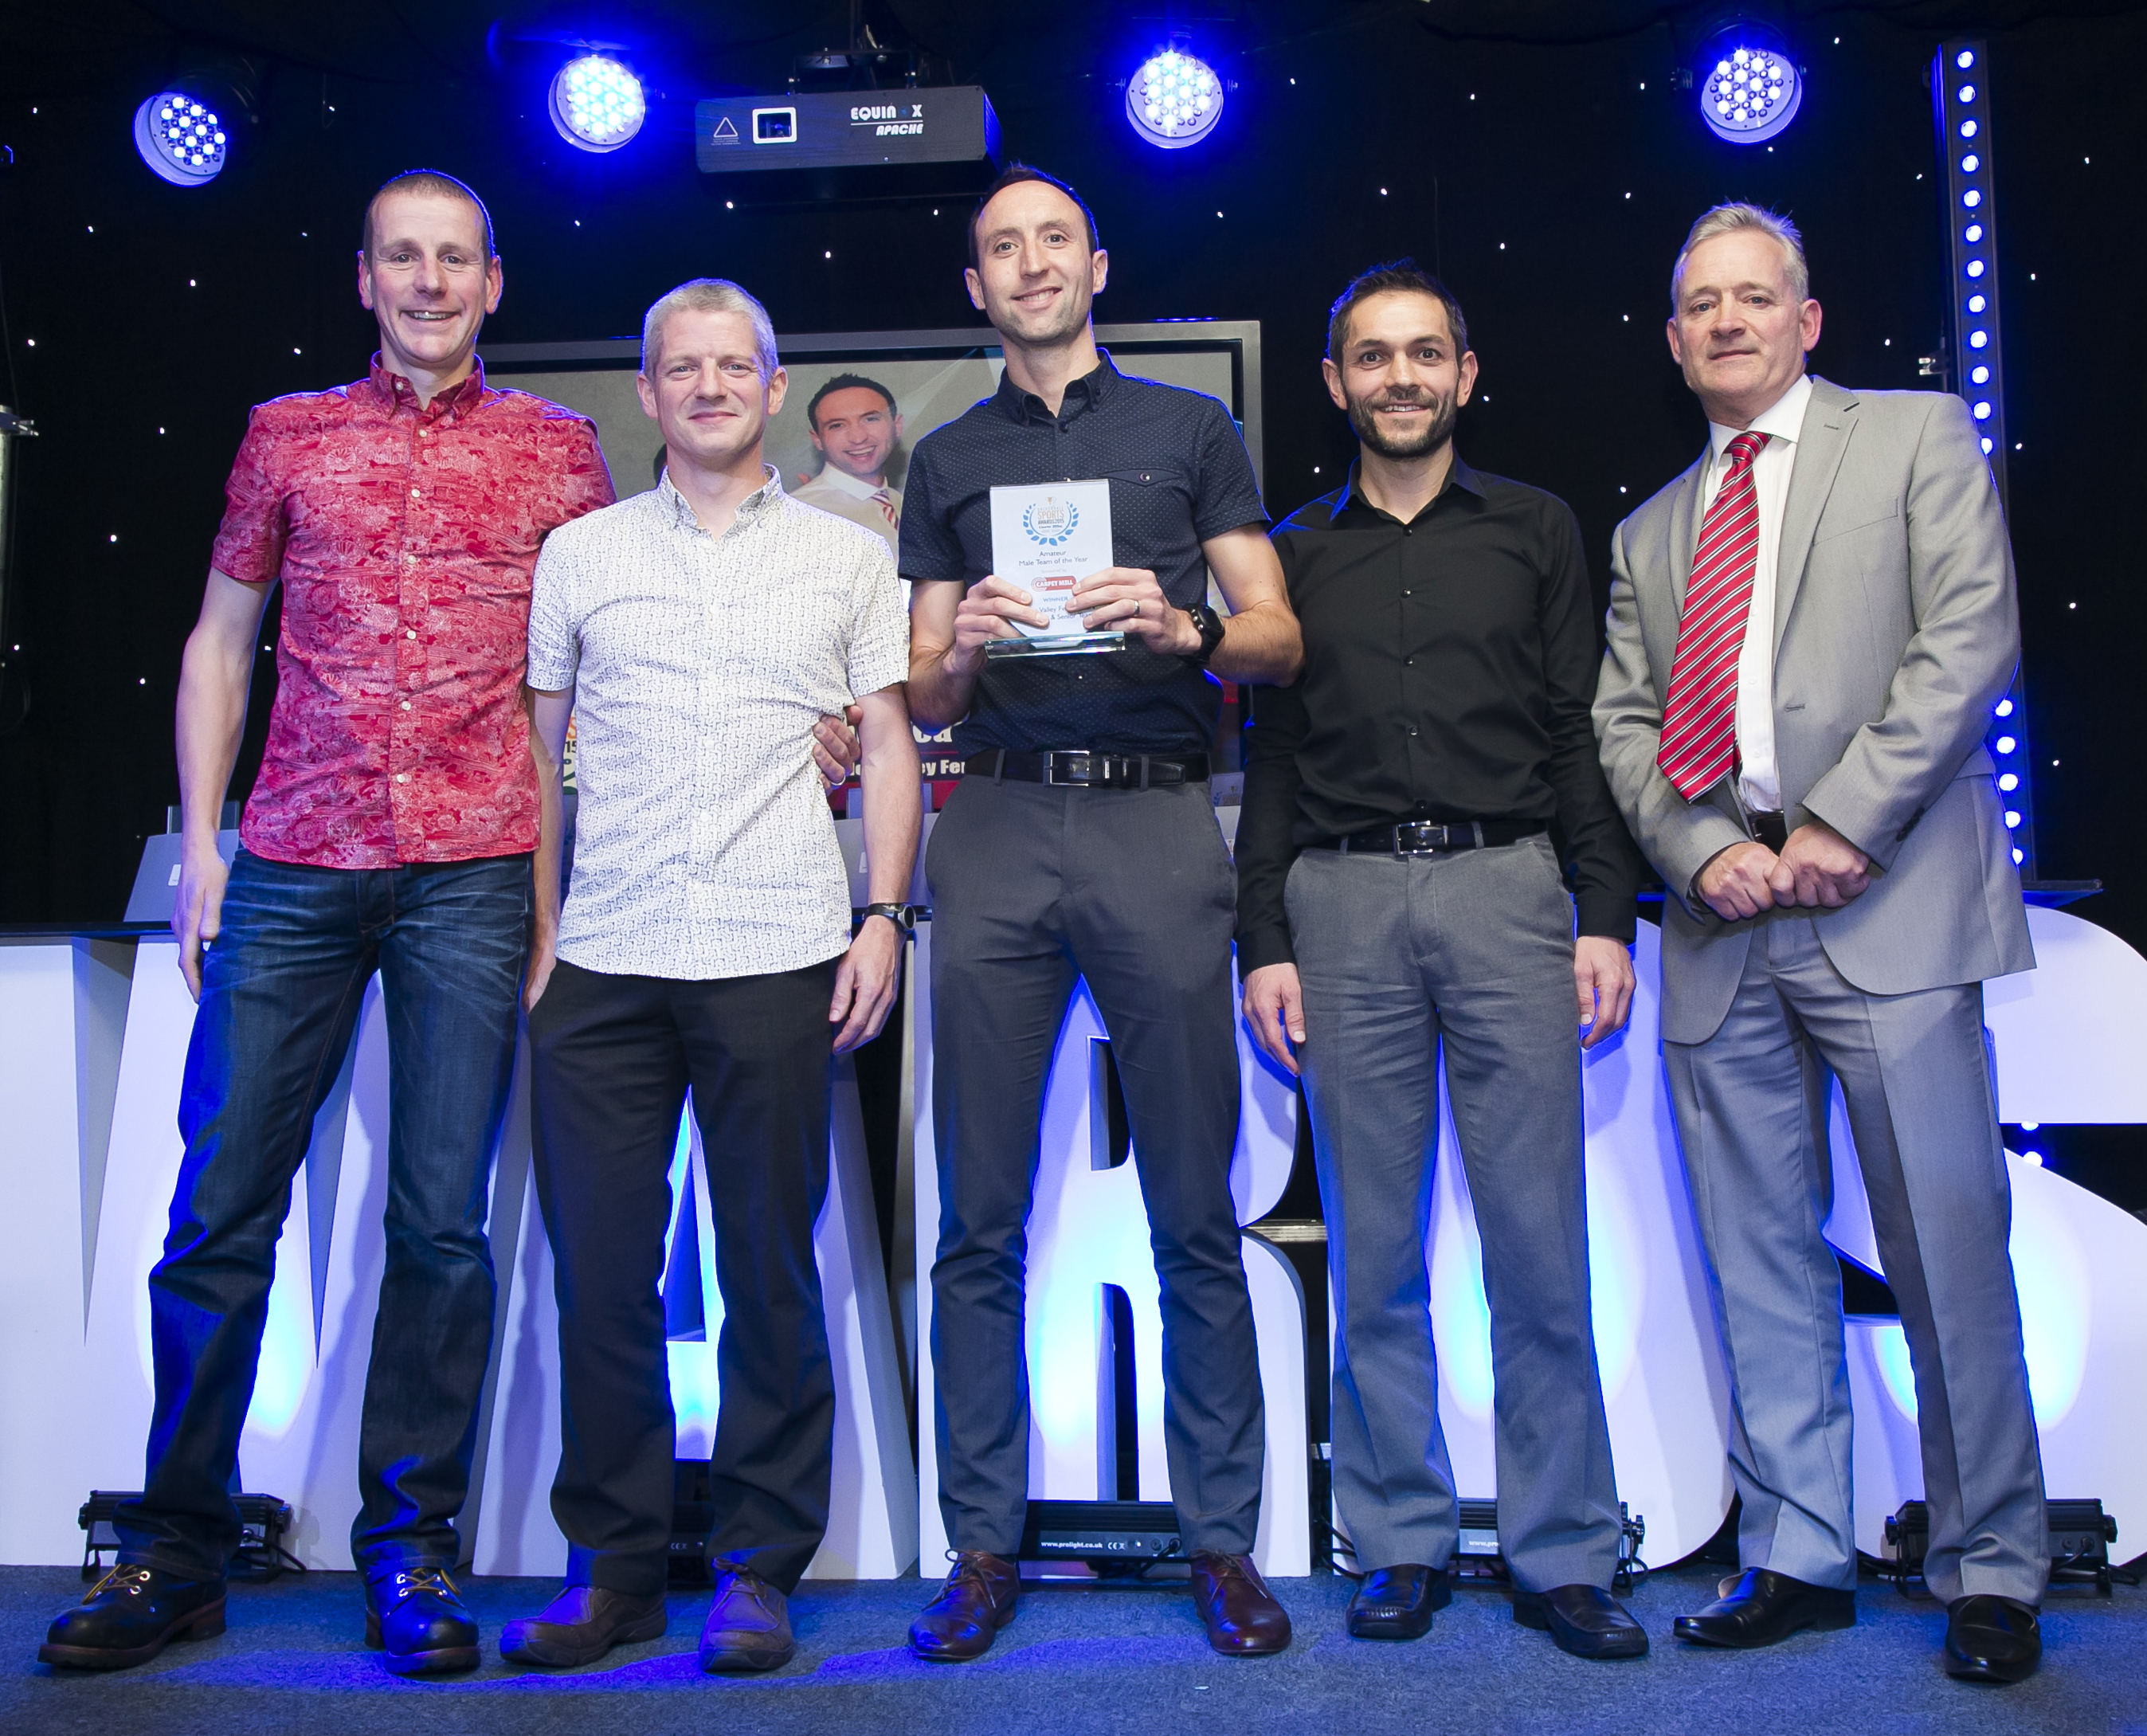 winners of the Amateur Male Team of the Year, Calder Valley Fell Runners Mens over 40s and Senior Team, Shaun Godsman, James Logue, Ben Mounsey and Karl Gray with Halifax Courier Sports Editor Ian Rushworth.